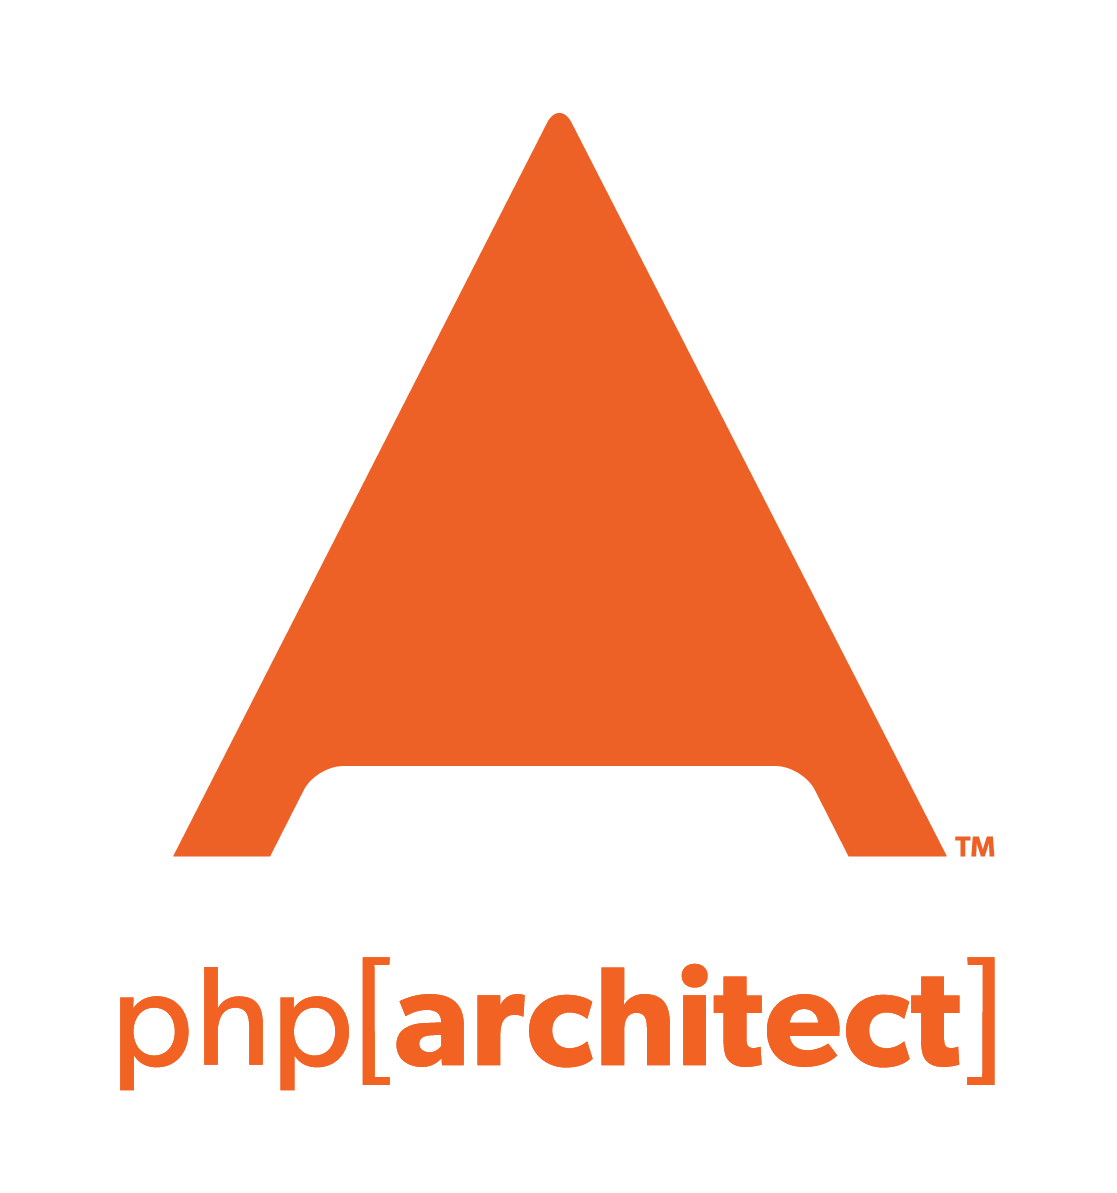 Re: Branding php[architect]